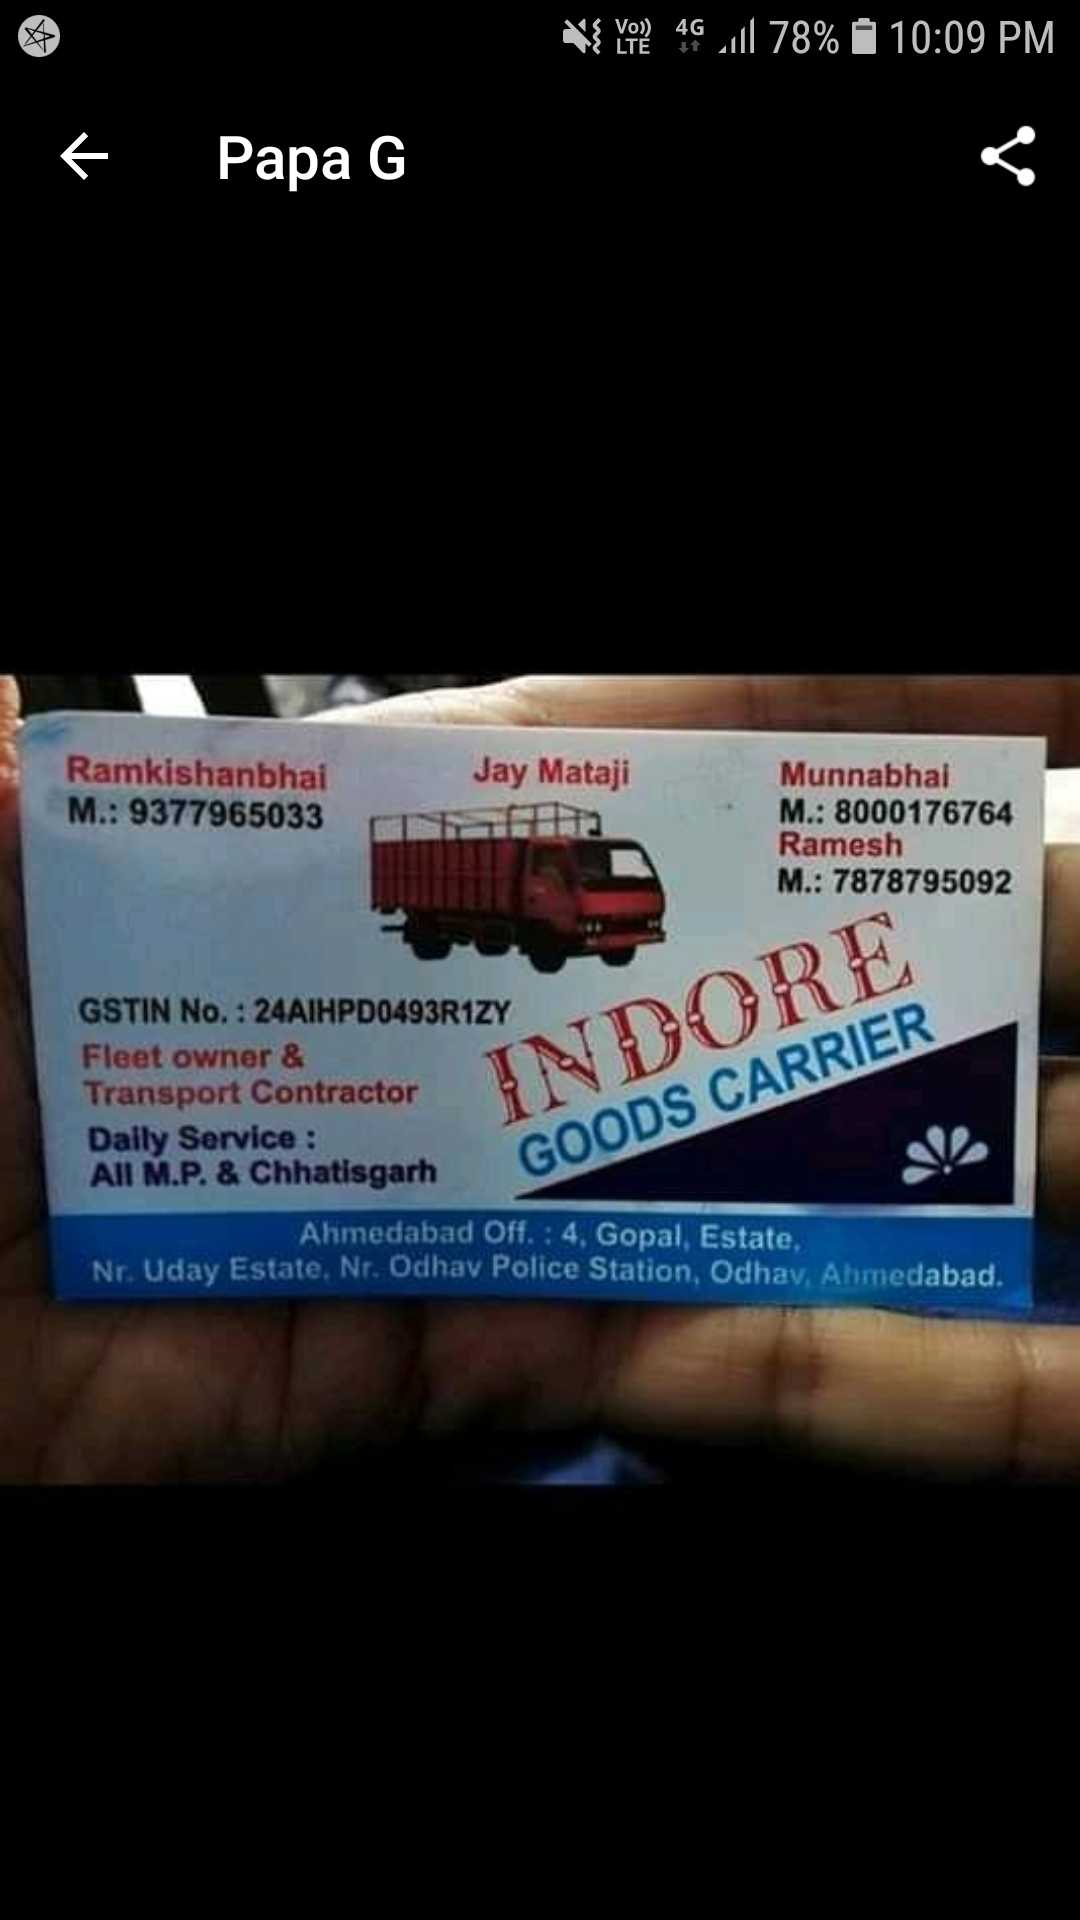 Indore Goods Carrier Transport in Odhav, Ahmedabad-382415